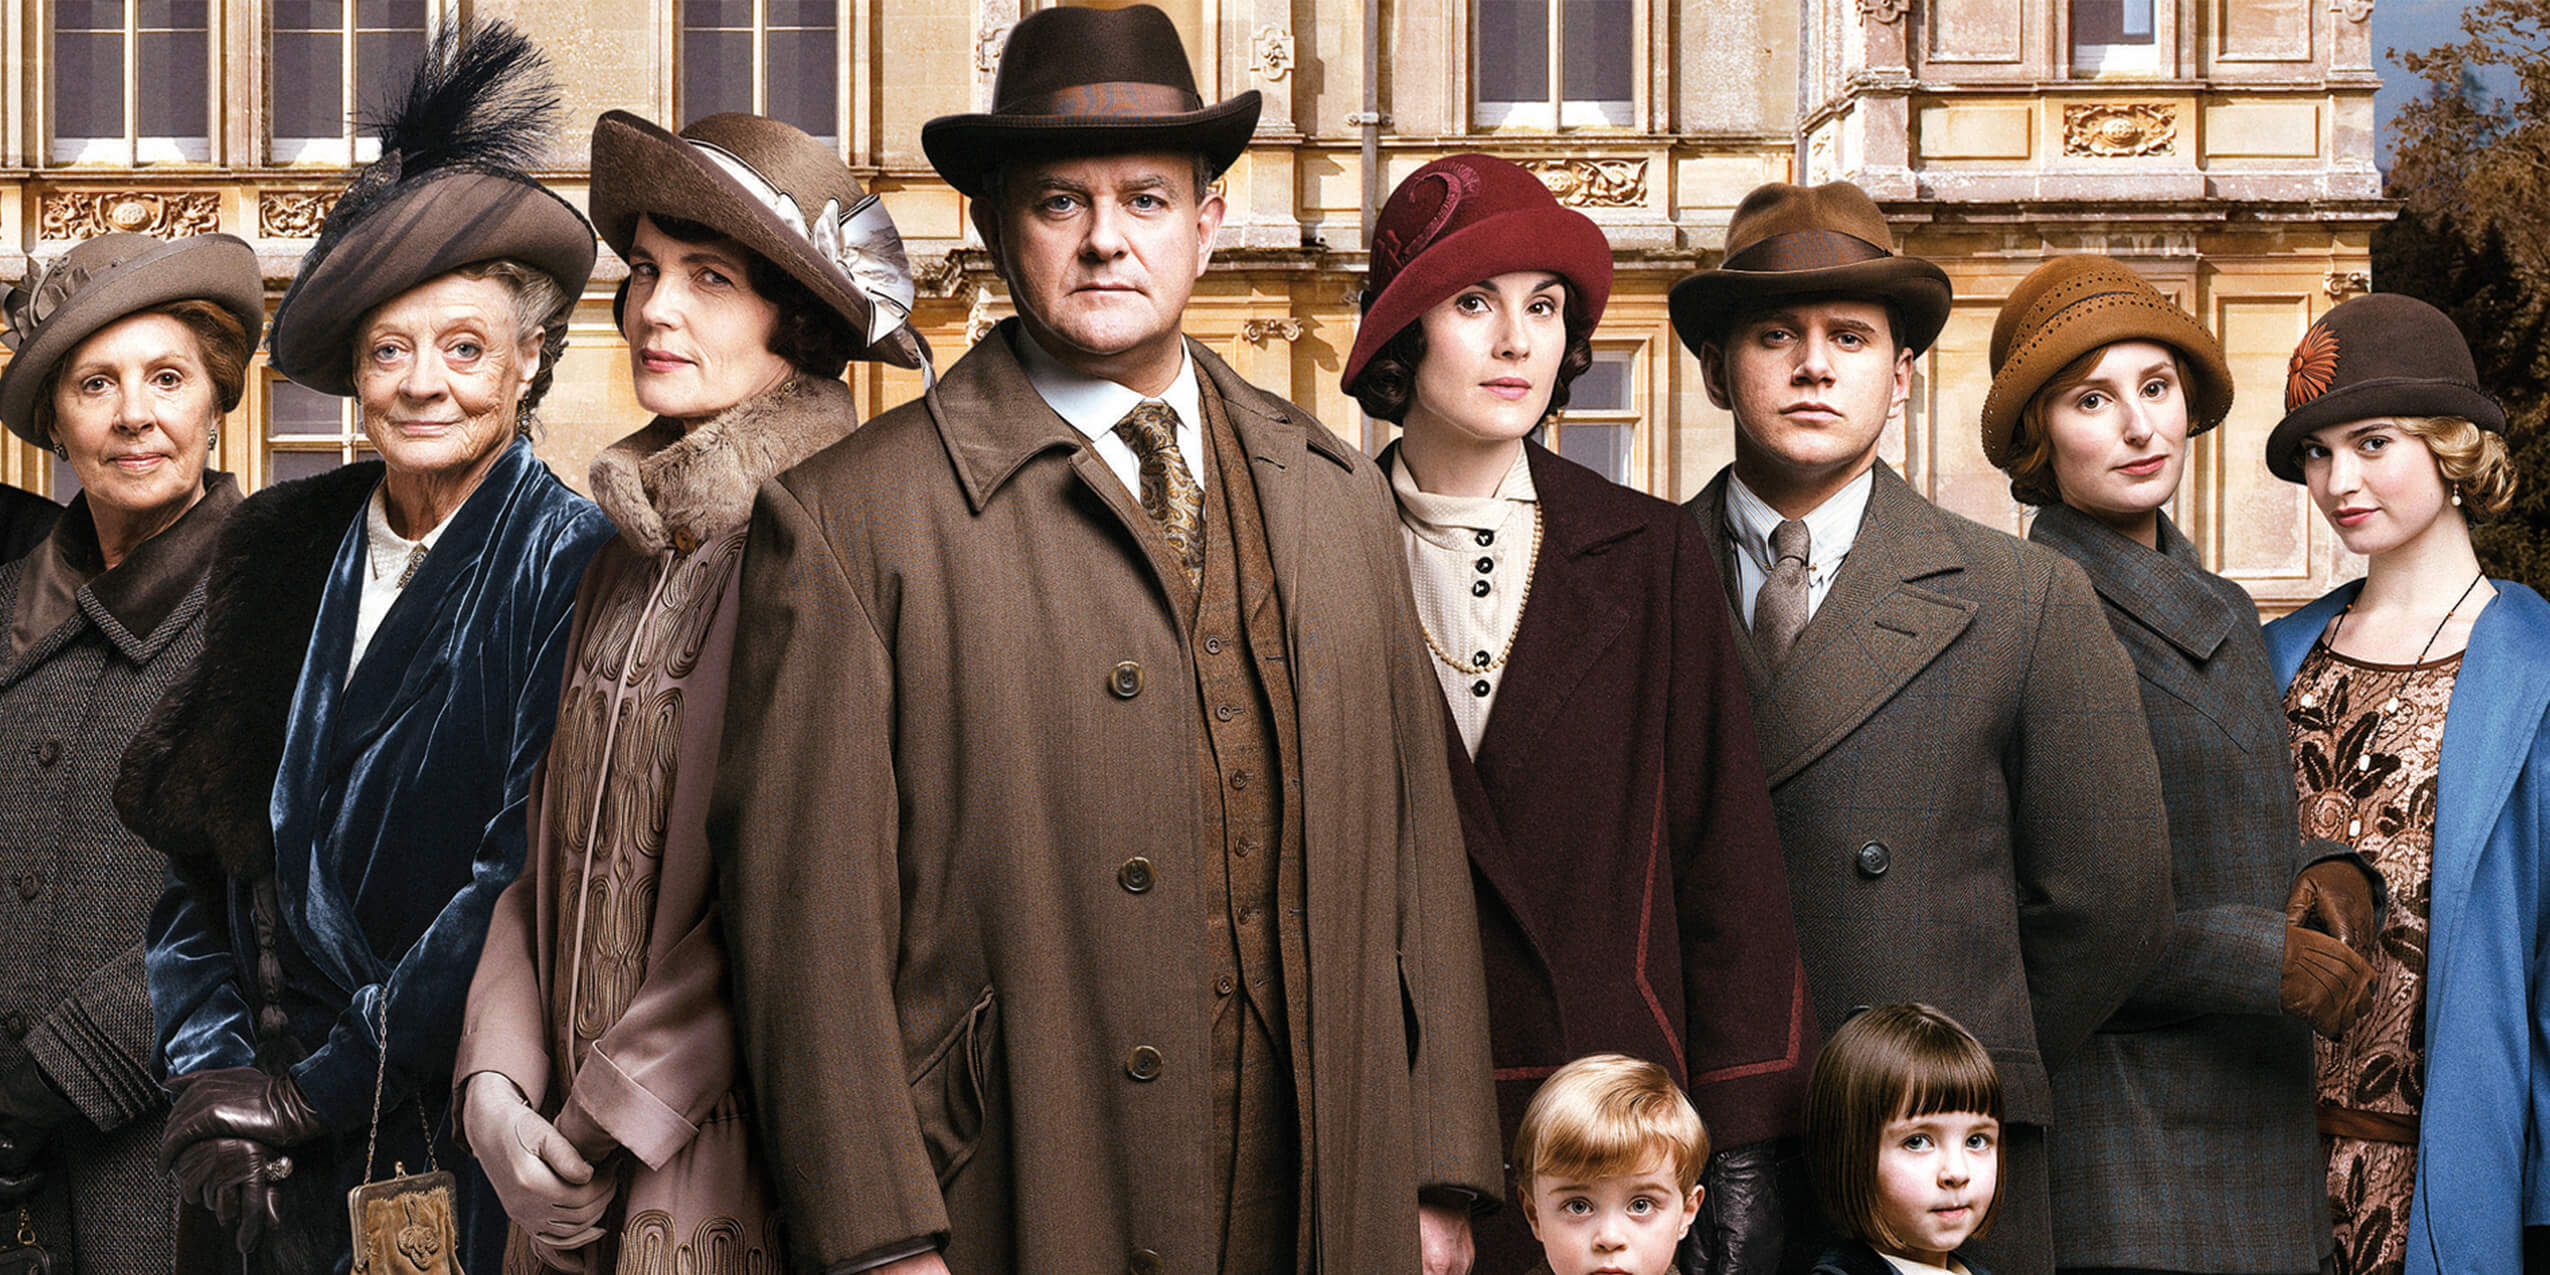 How to watch 'Downton Abbey' online